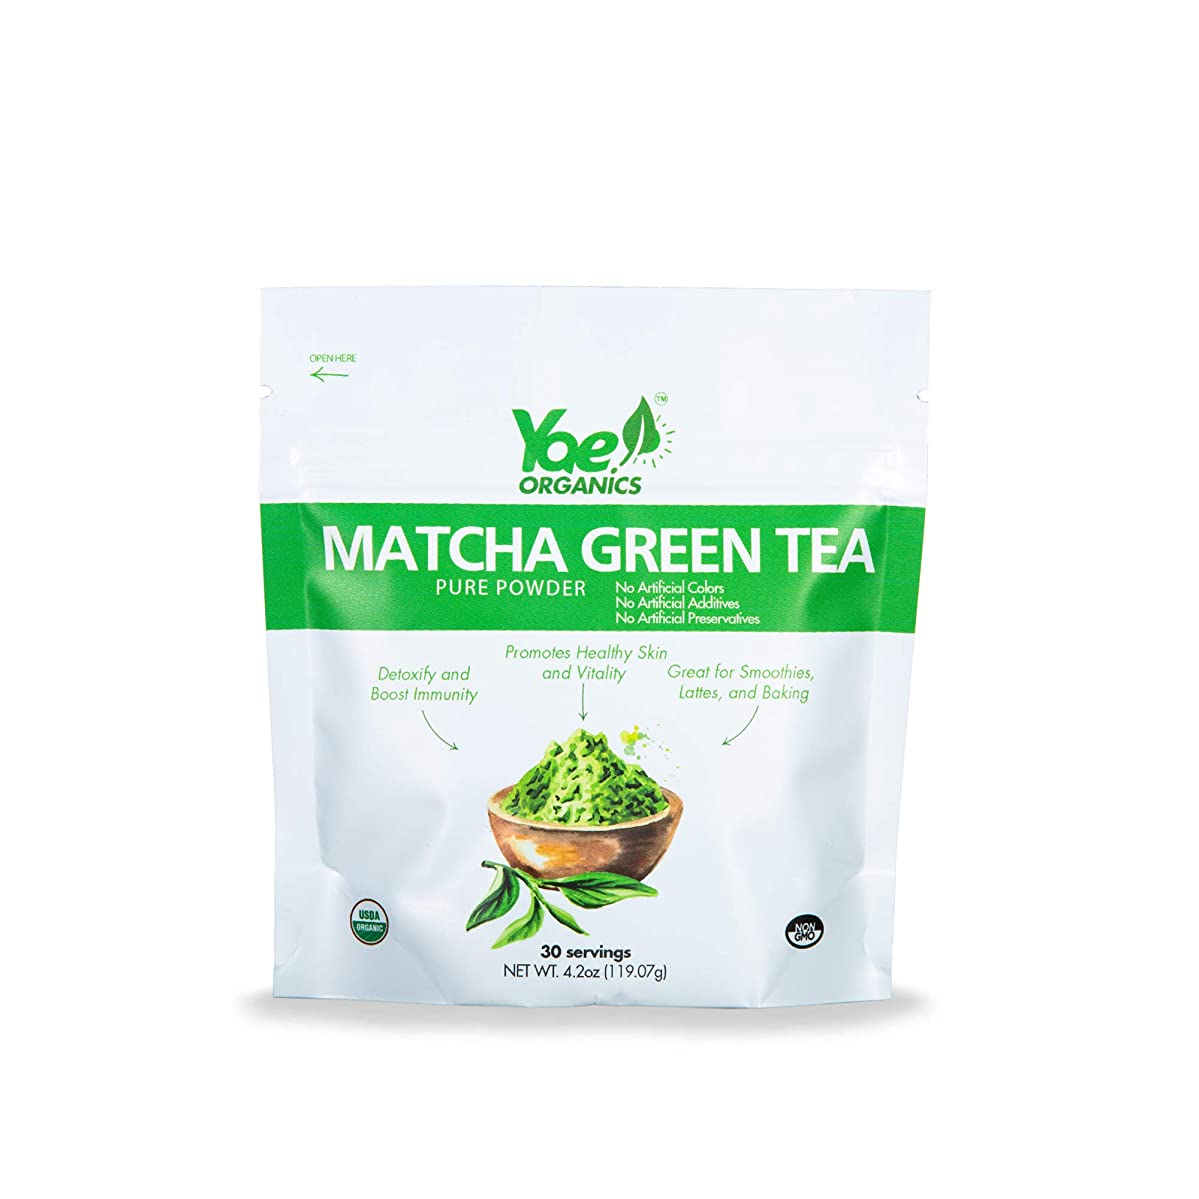 Yae! Organics 100% Pure Matcha Green Tea Powder, 4.2oz/30 Servings, Supports Immunity & Detoxification, Great for Energy, Focus, and Weight Loss